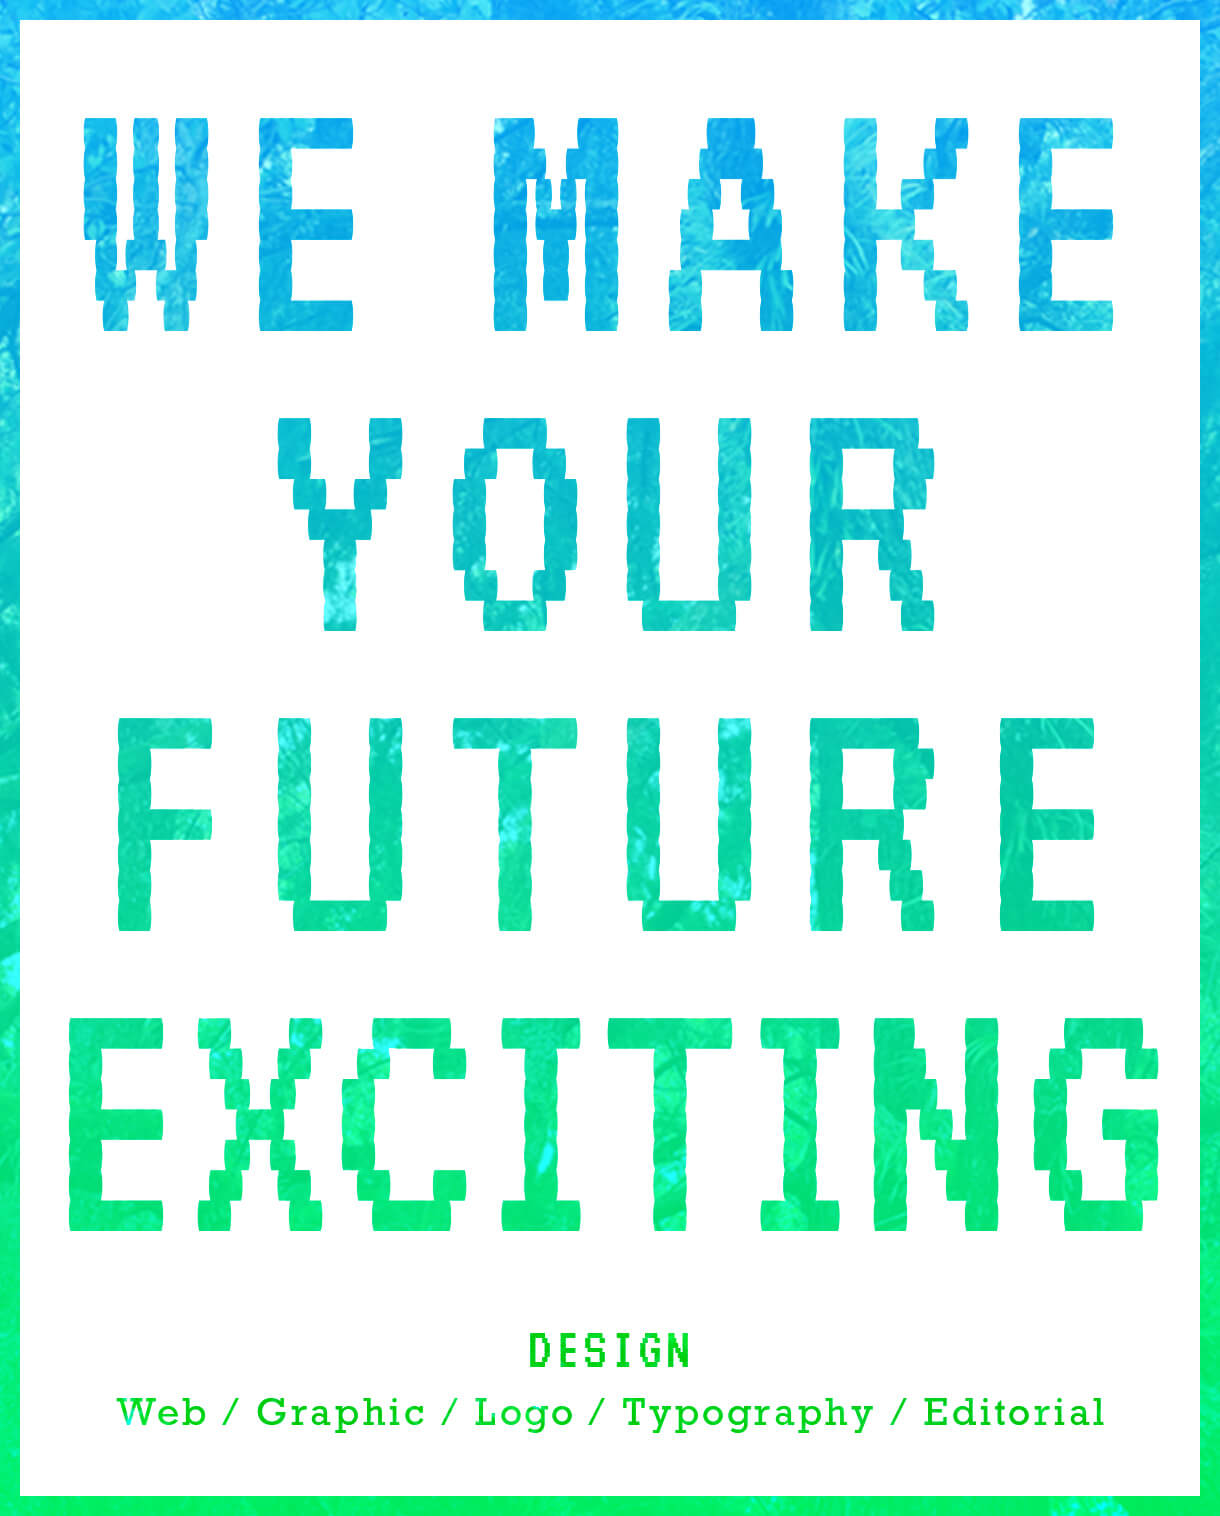 MAKE WE EXCITED FOR THE FUTURE